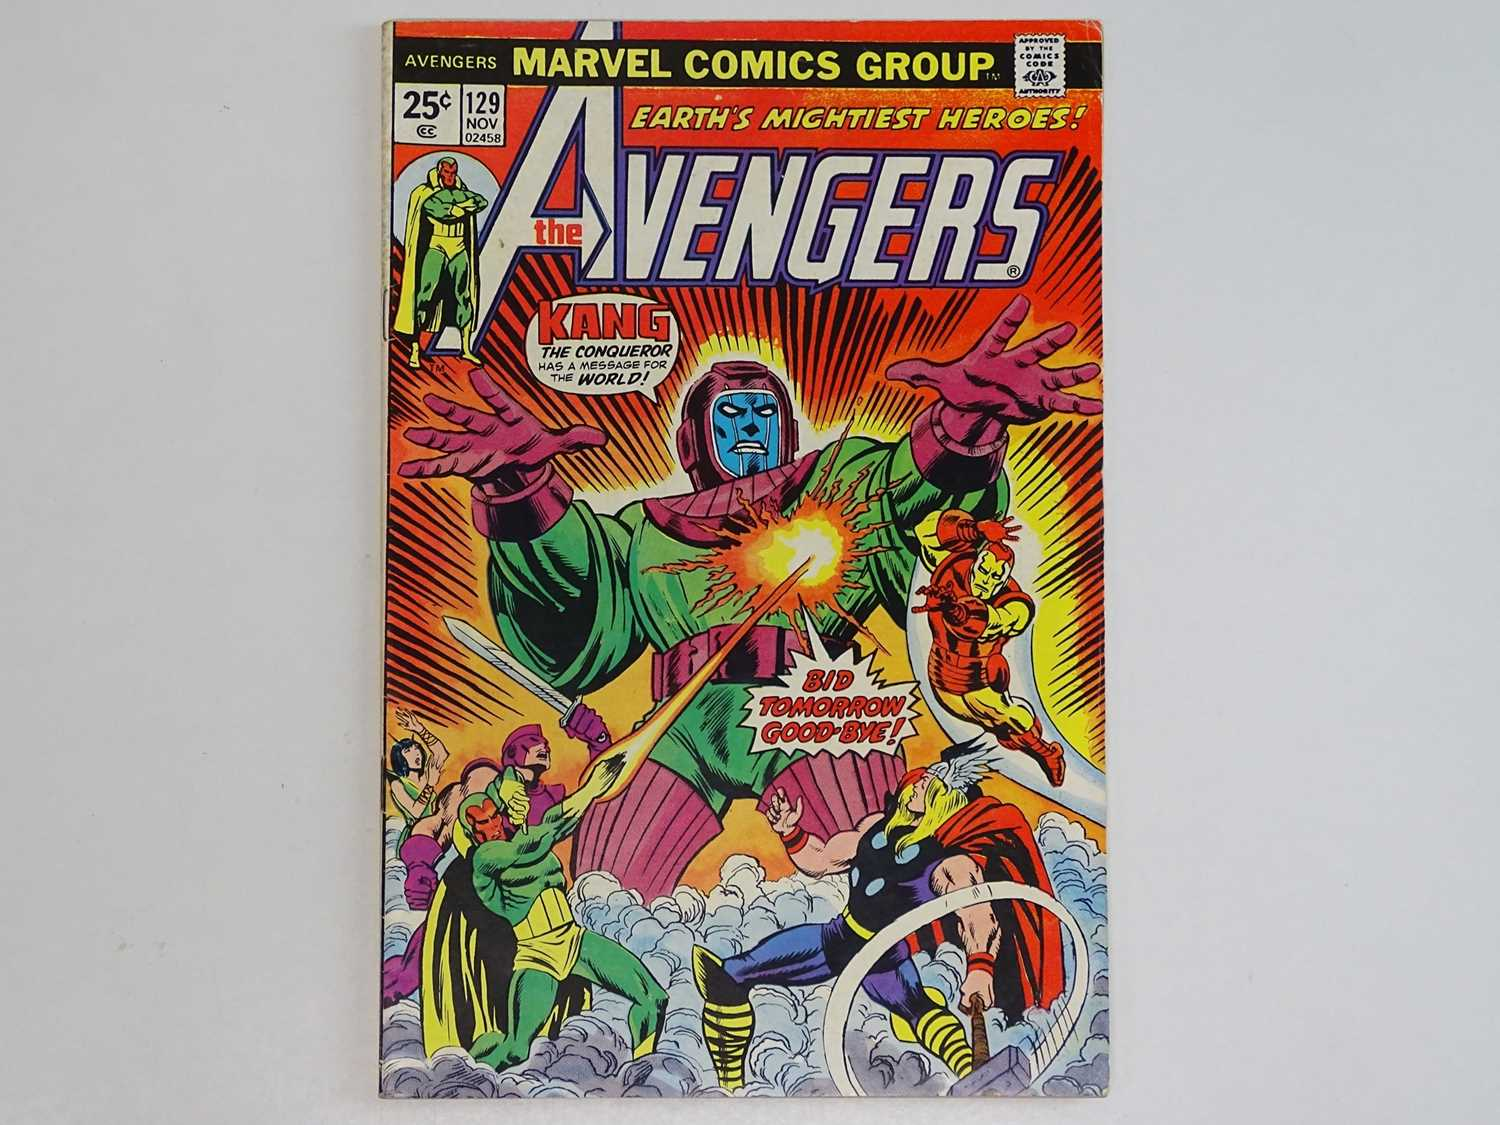 AVENGERS #129 - (1974 - MARVEL) - Classic Kang Cover + Kang the Conqueror, Ram-Tut appearances - Ron